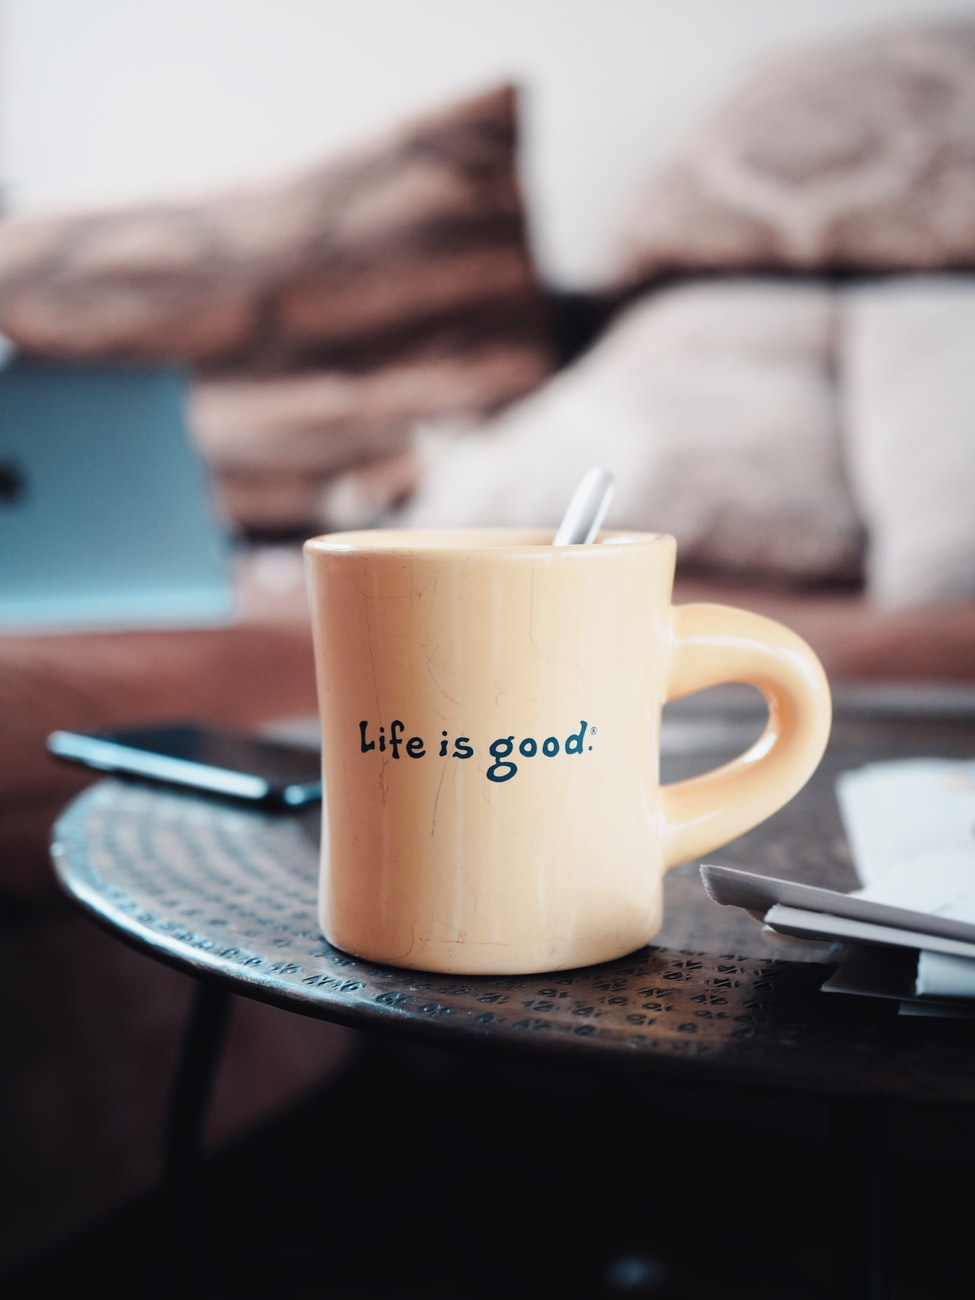 How To Be Good At Life?